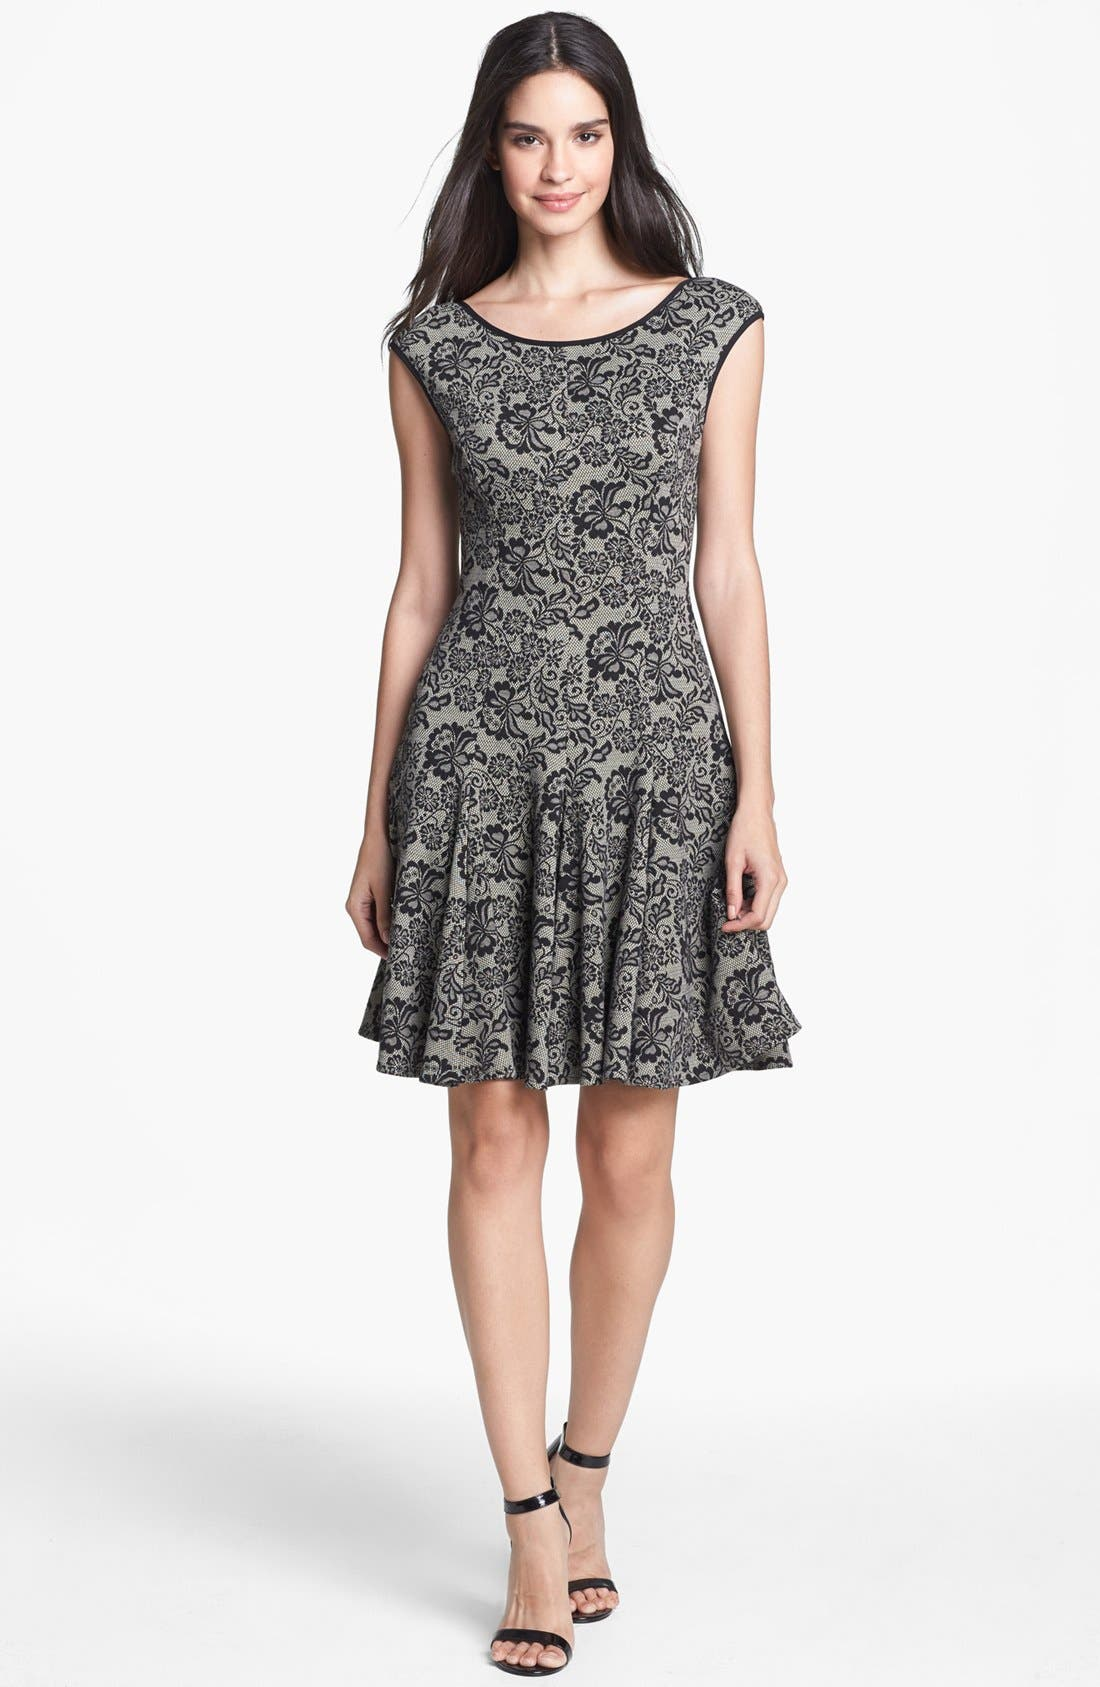 Main Image - Maggy London Lace Print Jacquard Fit & Flare Dress (Petite)